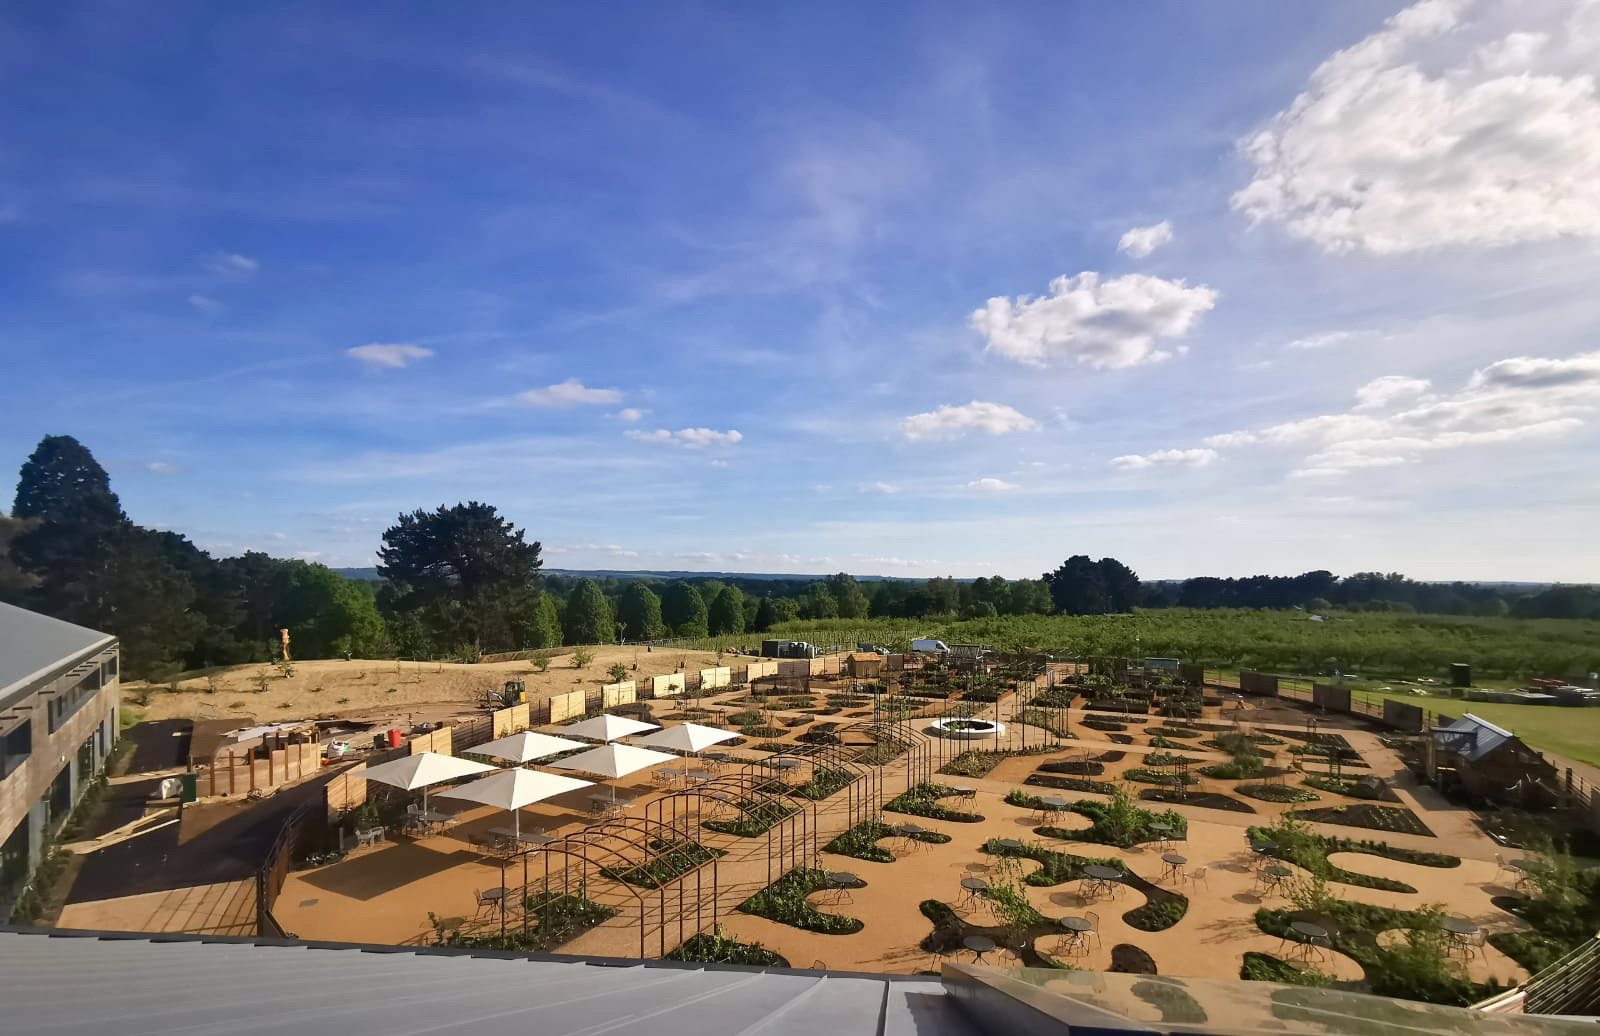 Overview of the new RHS Wisley World Food Garden by Ann-Marie Powell